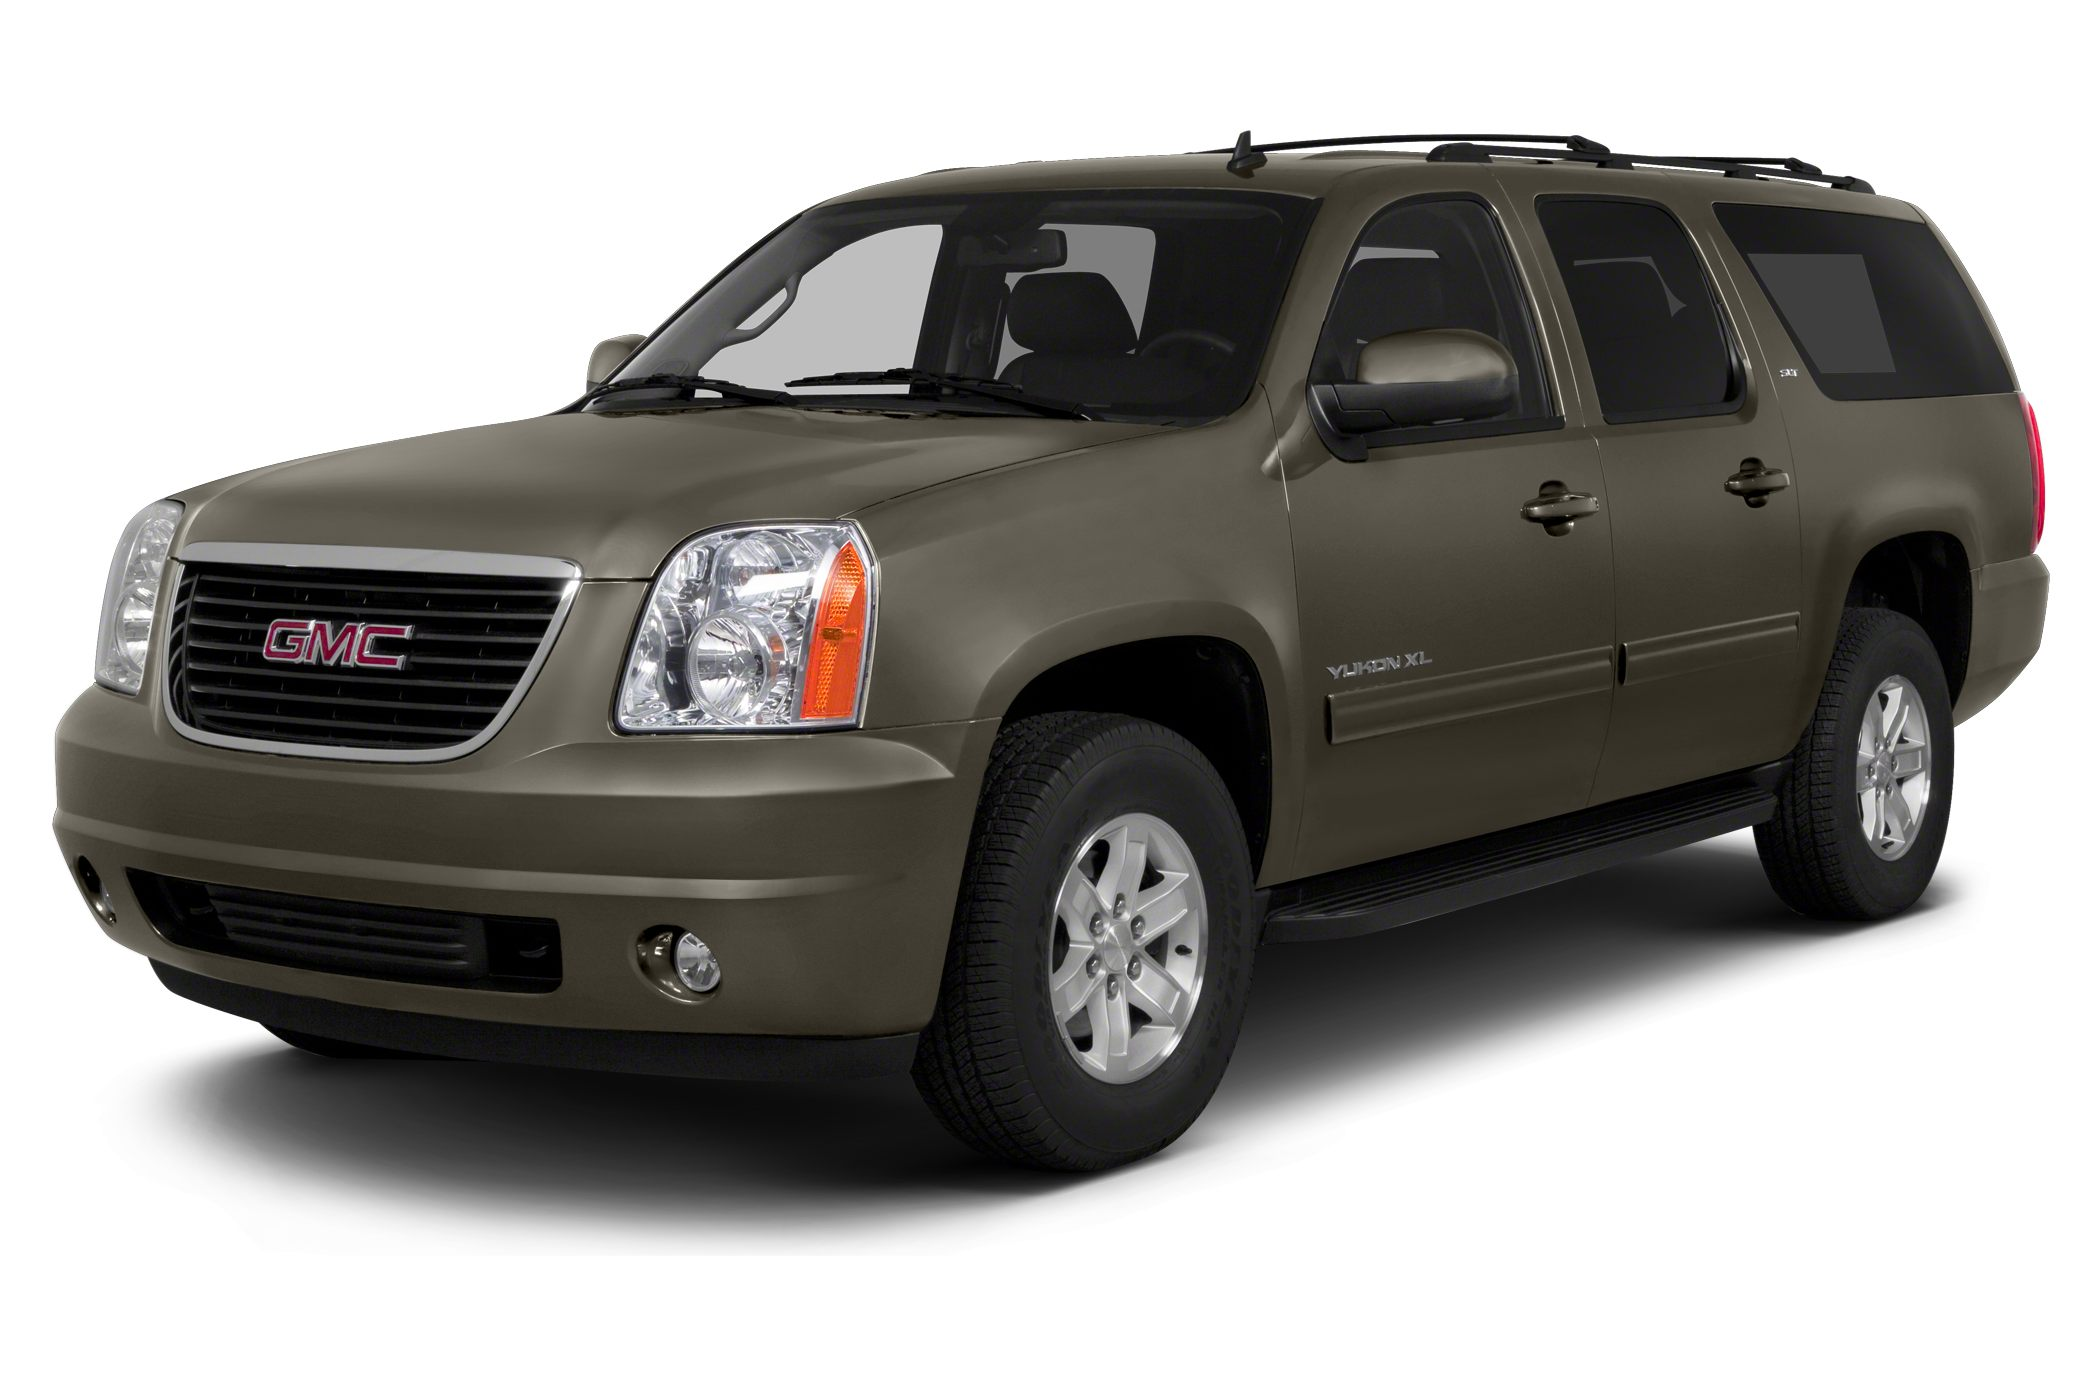 2012 GMC Yukon XL 1500 SLT This is a very nice 2012 GMC Yukon XL with a clean interior Nicely equ